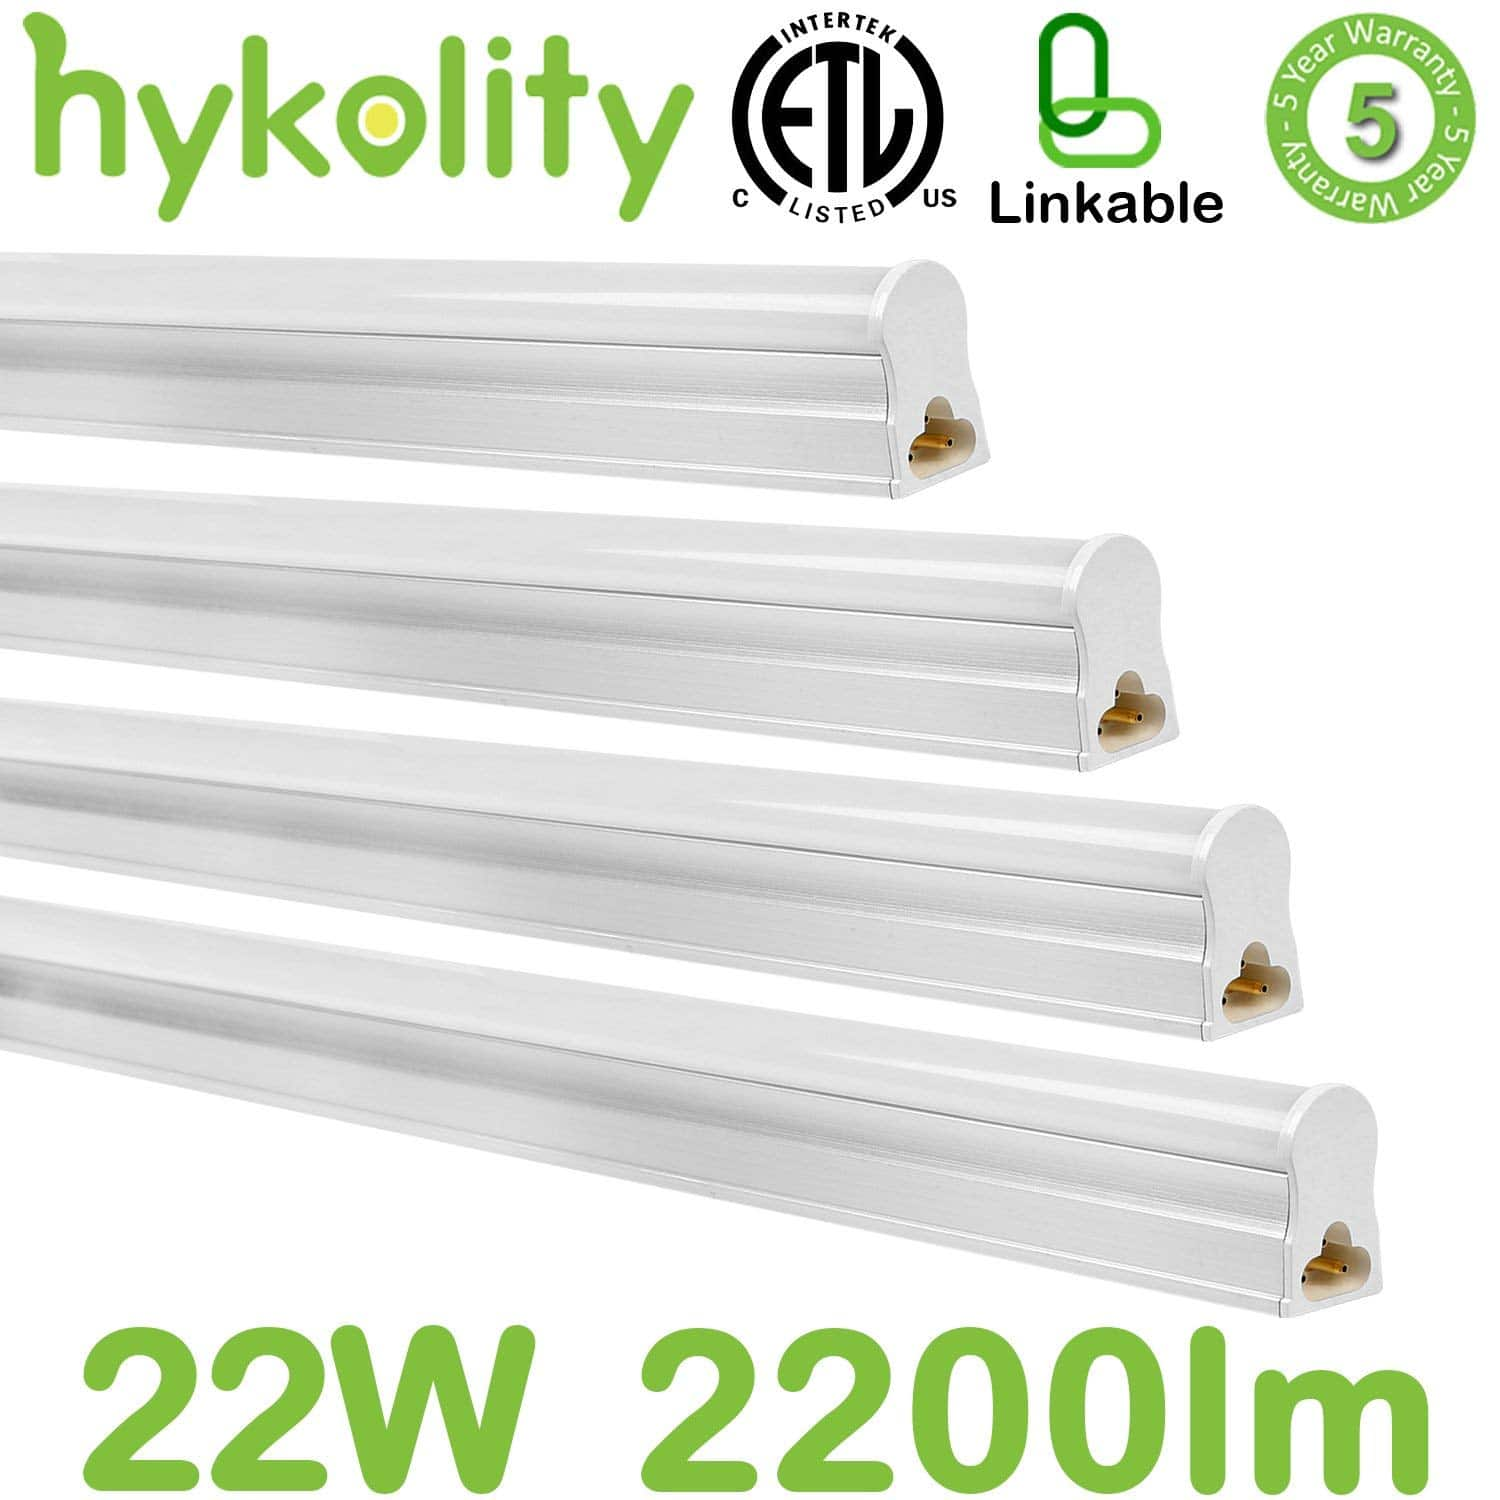 4ft 22W LED Flushmount Linkable Shop Light-4 pack $34.99